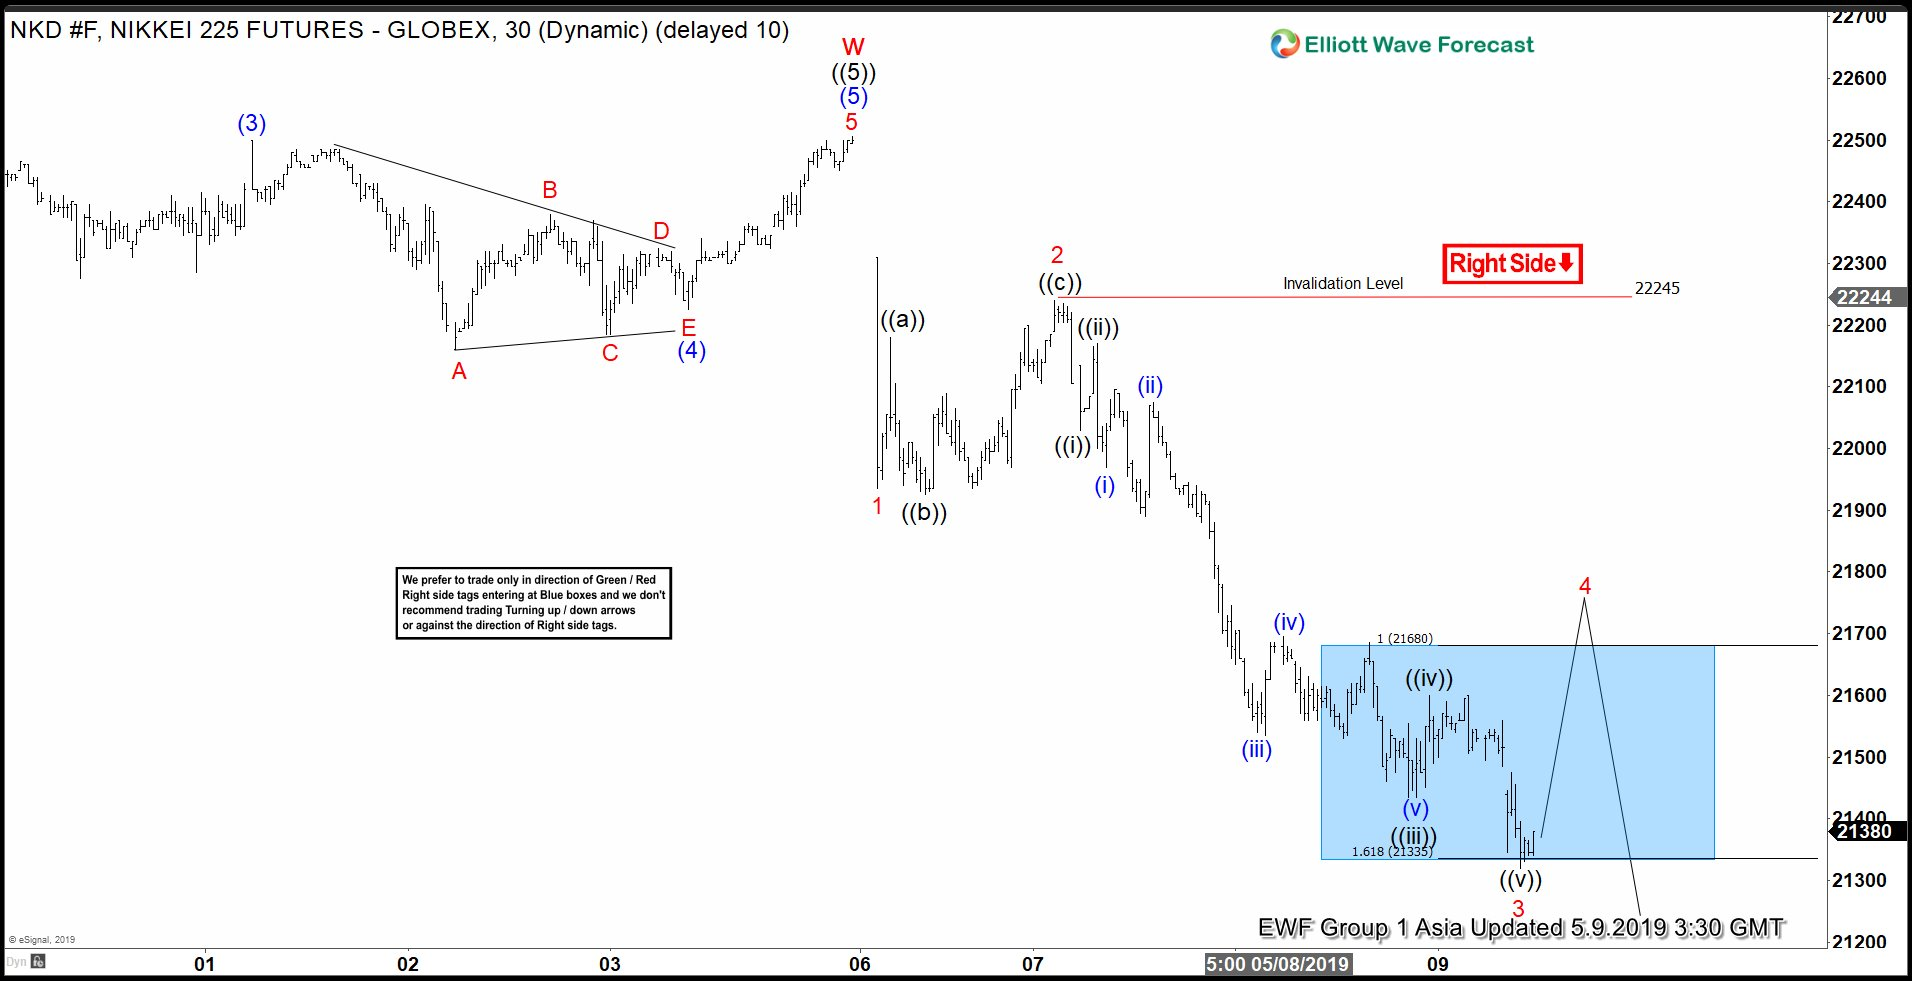 Elliott Wave View: Impulsive Decline in Nikkei